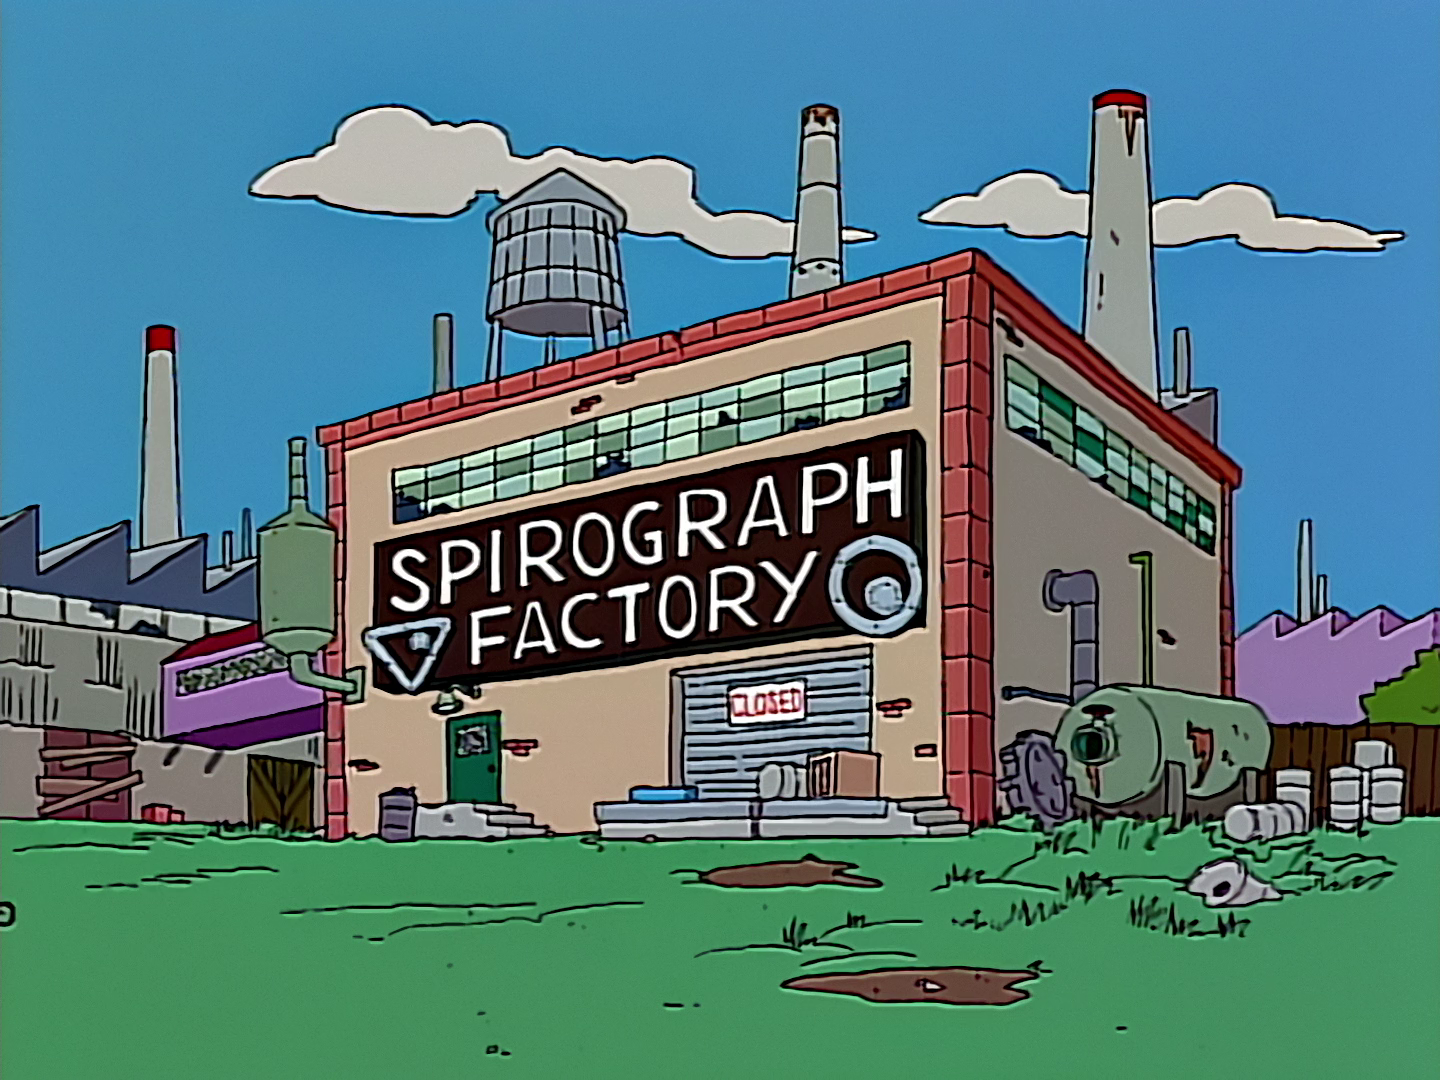 Spirograph Factory.png